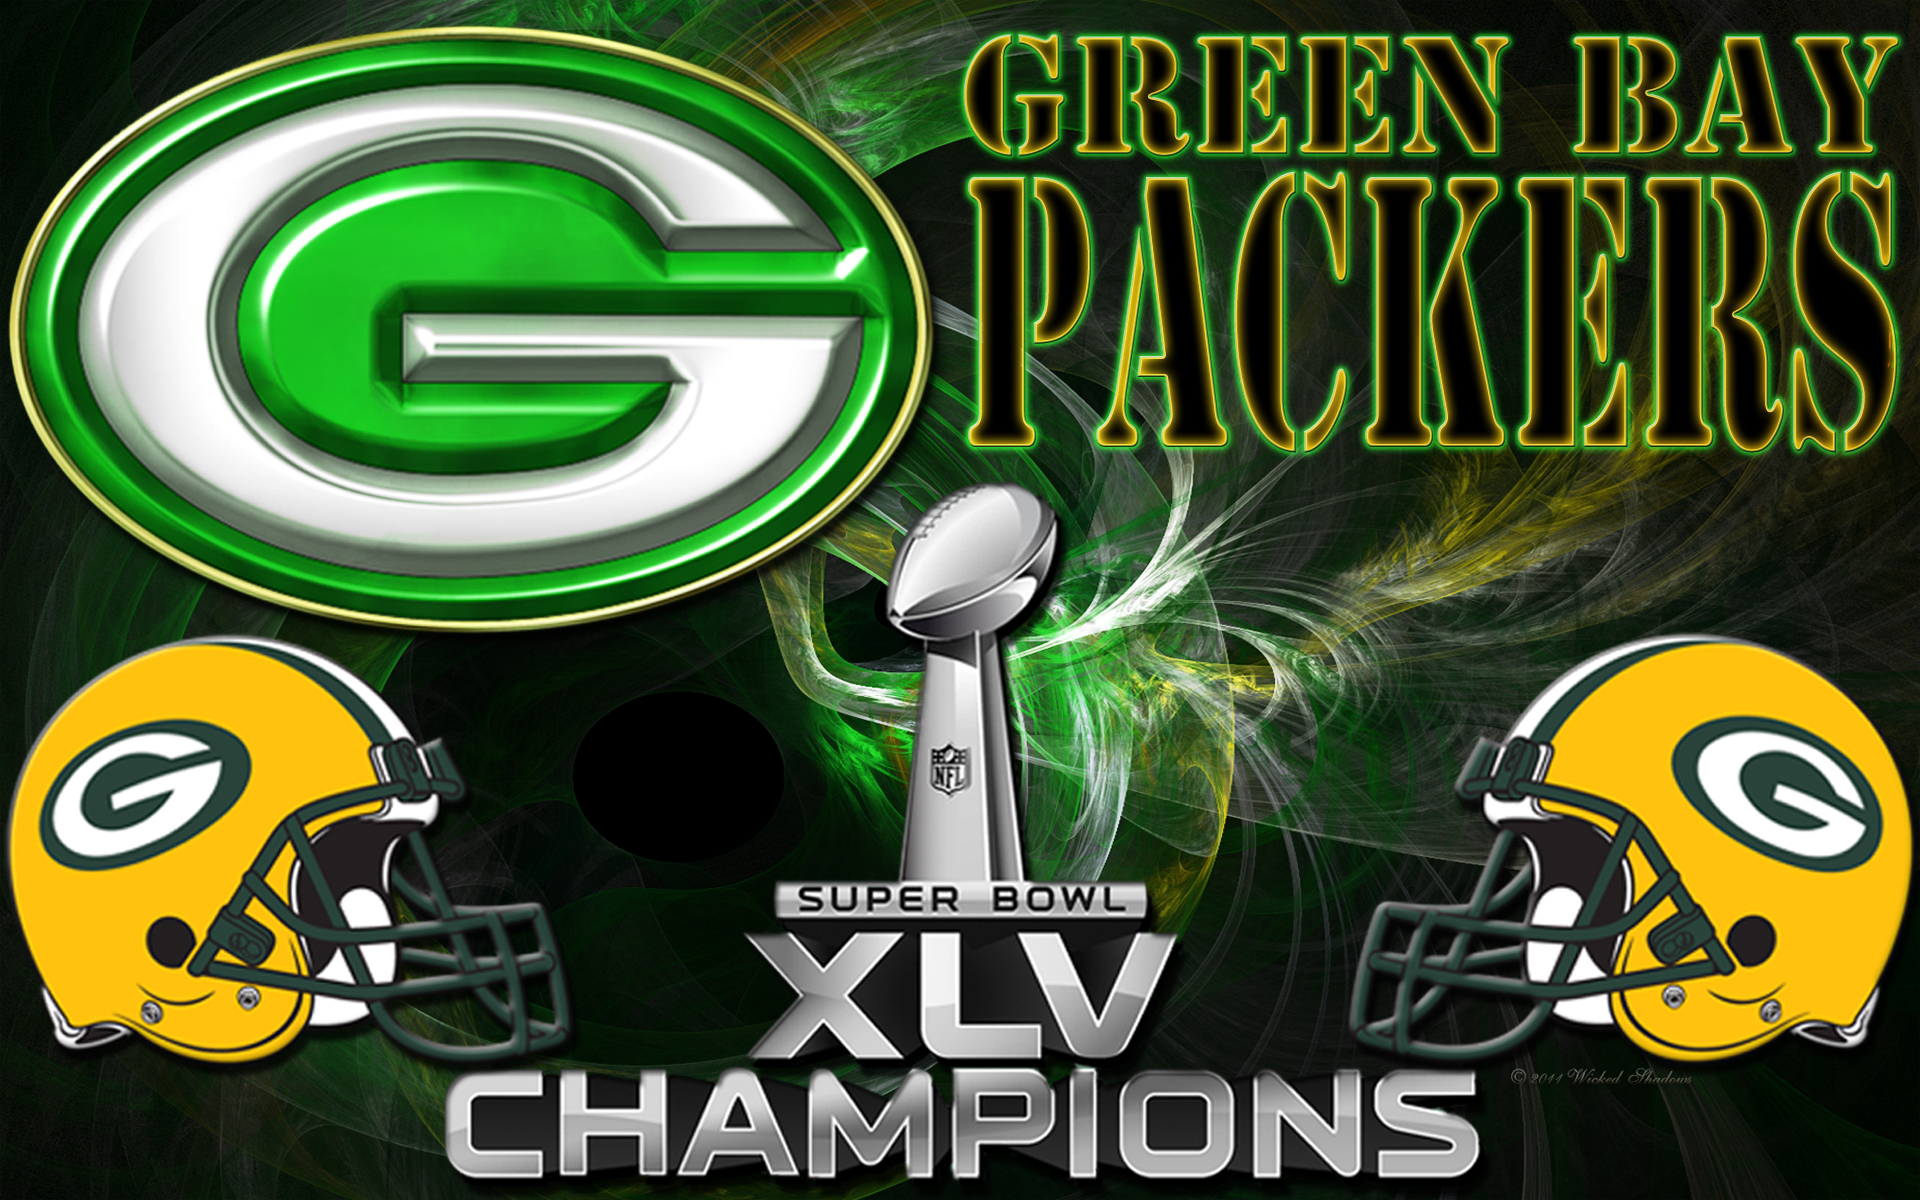 Packers Screensaver